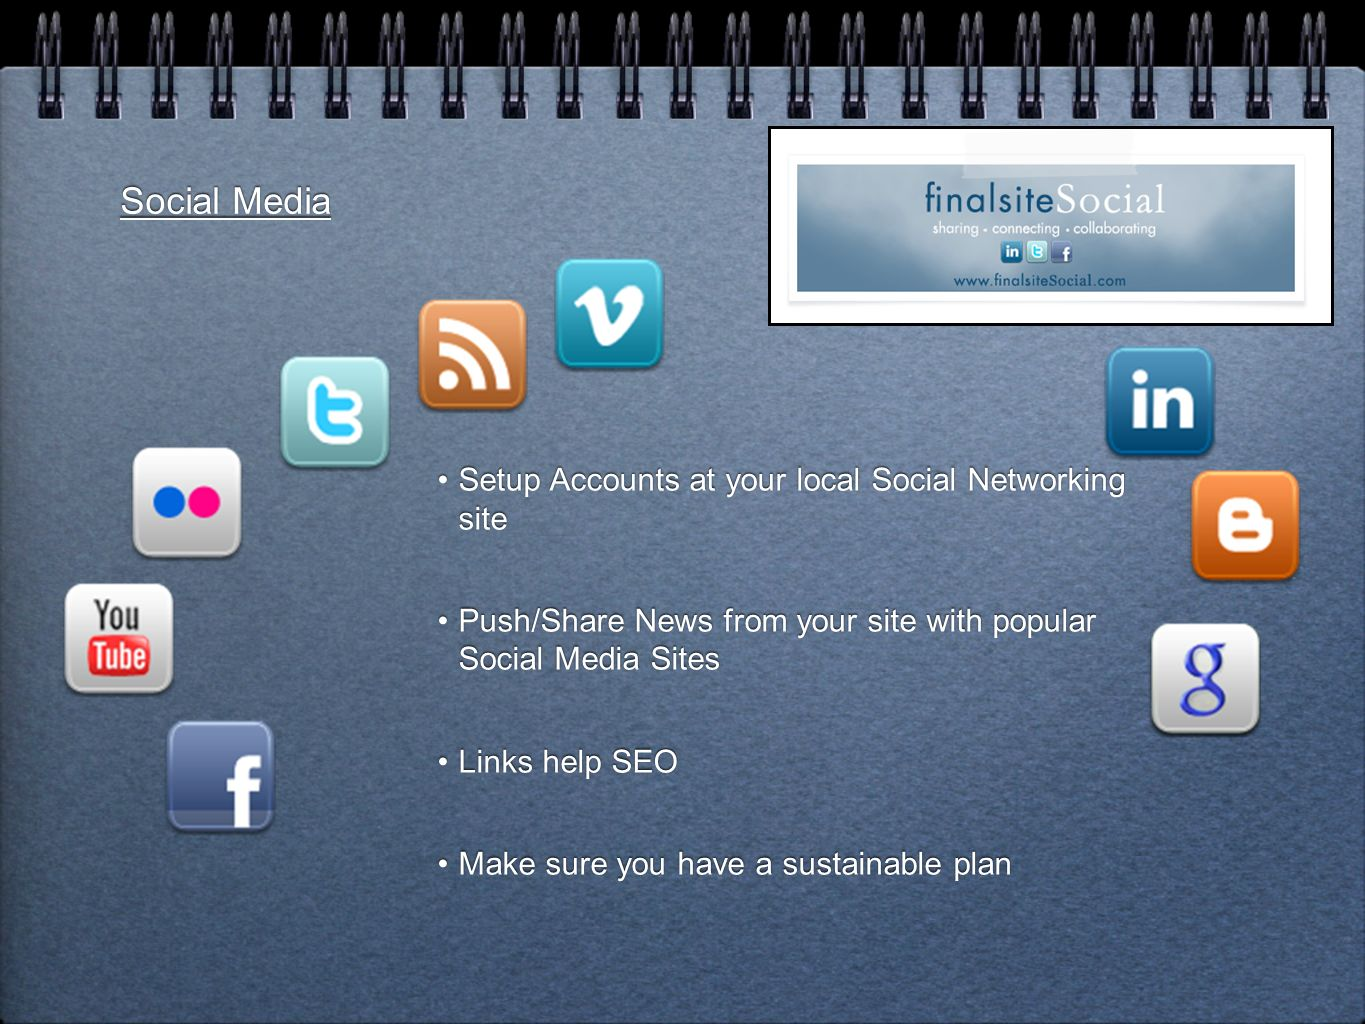 Social Media Setup Accounts at your local Social Networking site Push/Share News from your site with popular Social Media Sites Links help SEO Make sure you have a sustainable plan Setup Accounts at your local Social Networking site Push/Share News from your site with popular Social Media Sites Links help SEO Make sure you have a sustainable plan